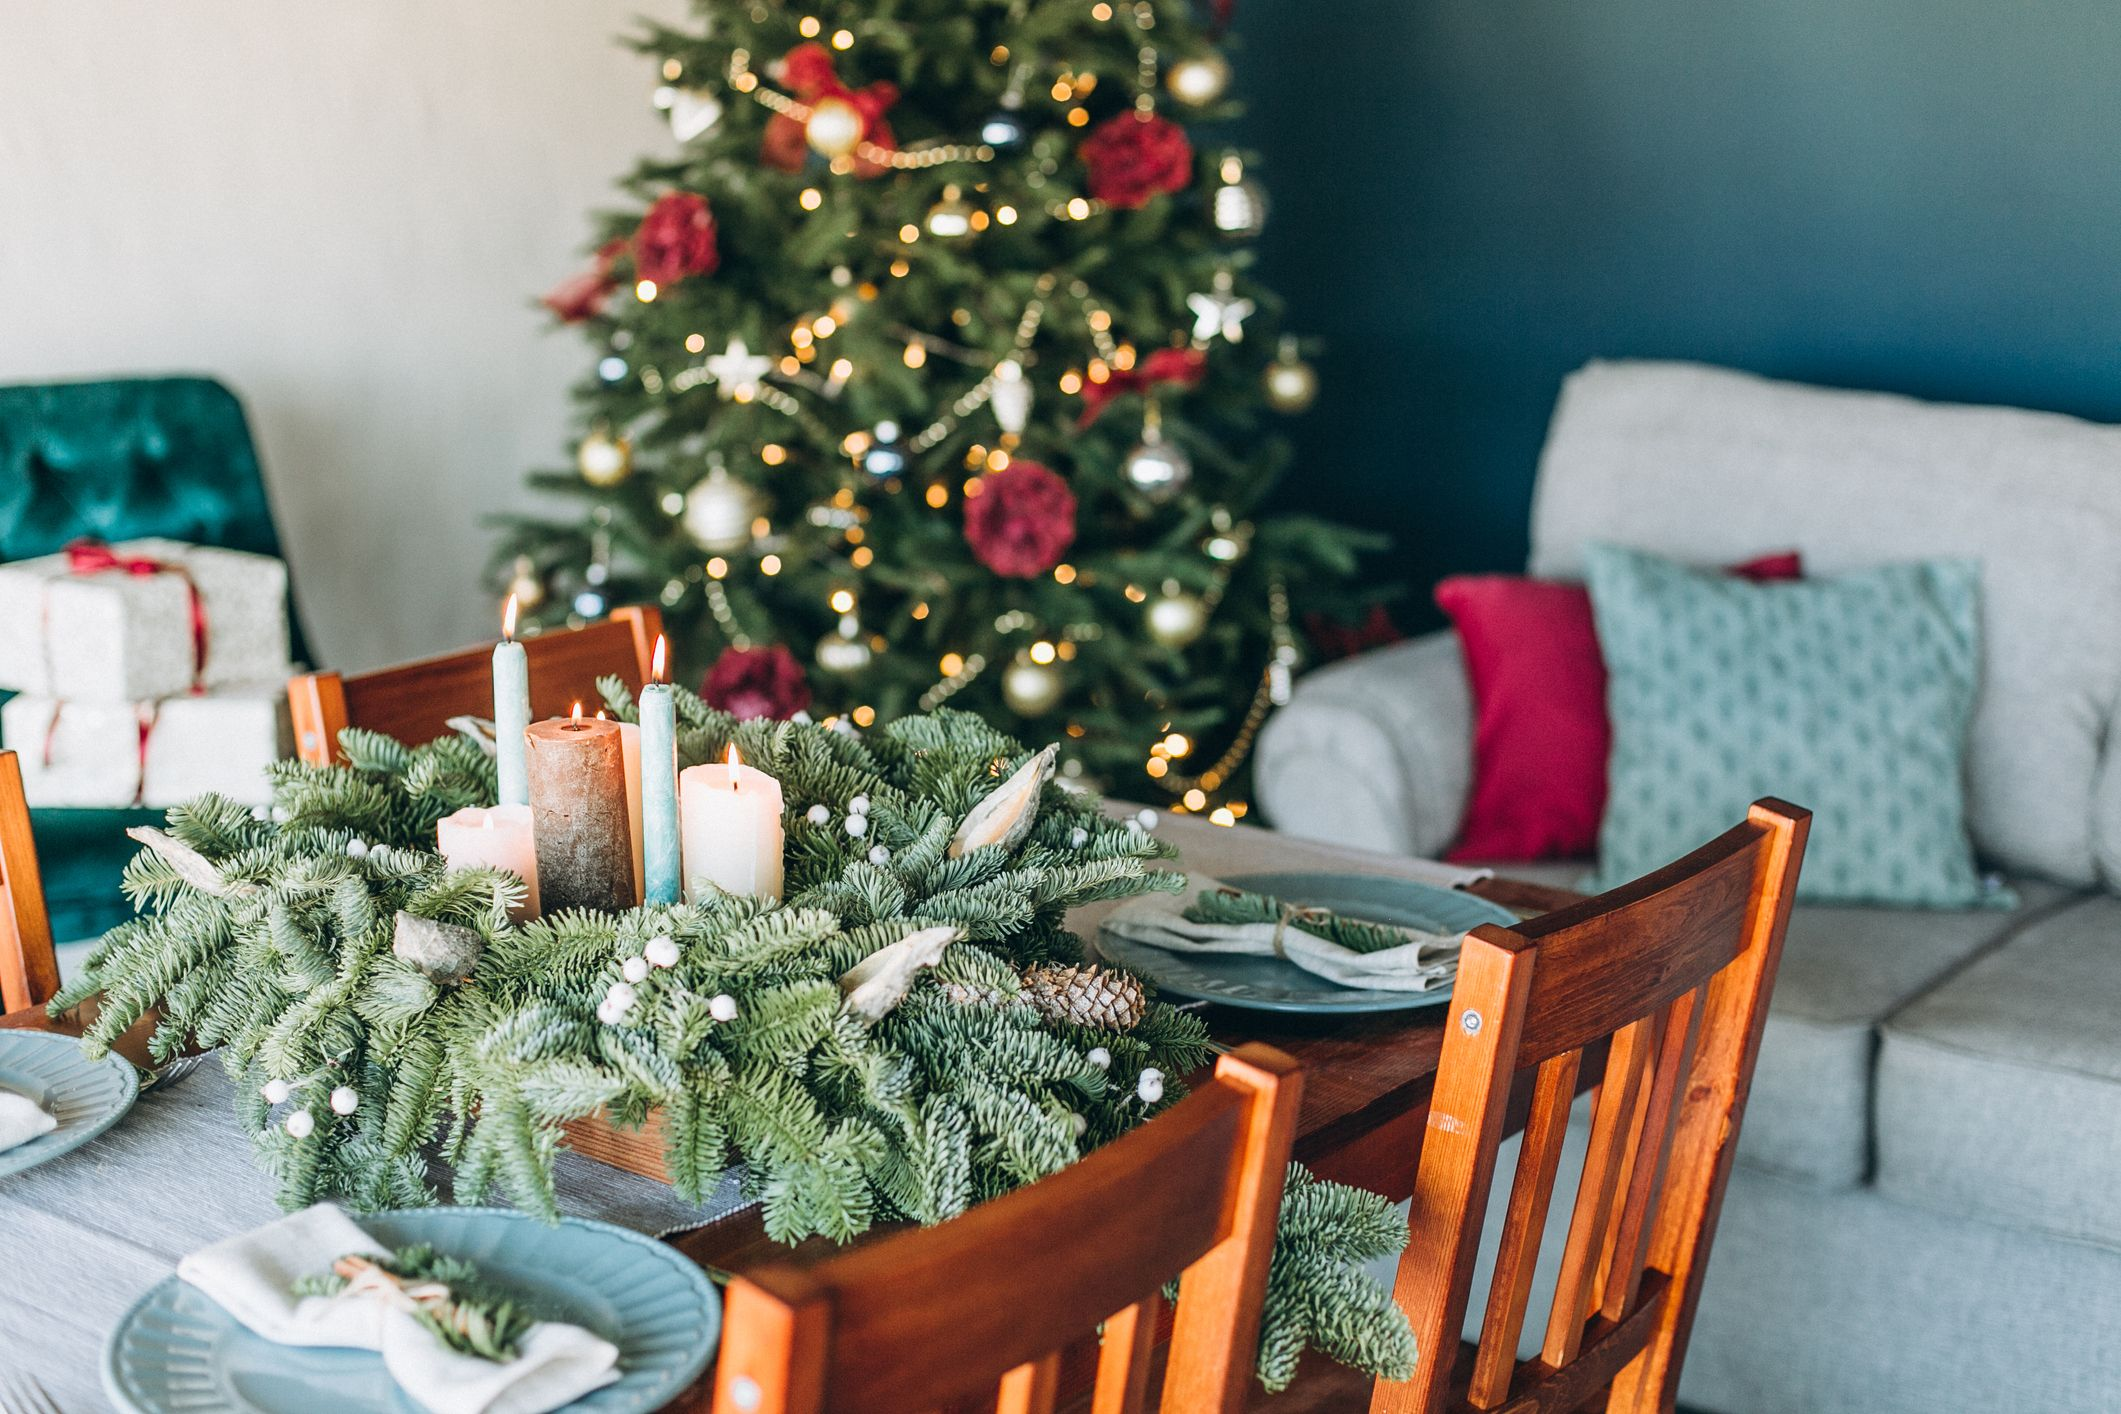 6 top tips to keep your Christmas foliage looking fresh